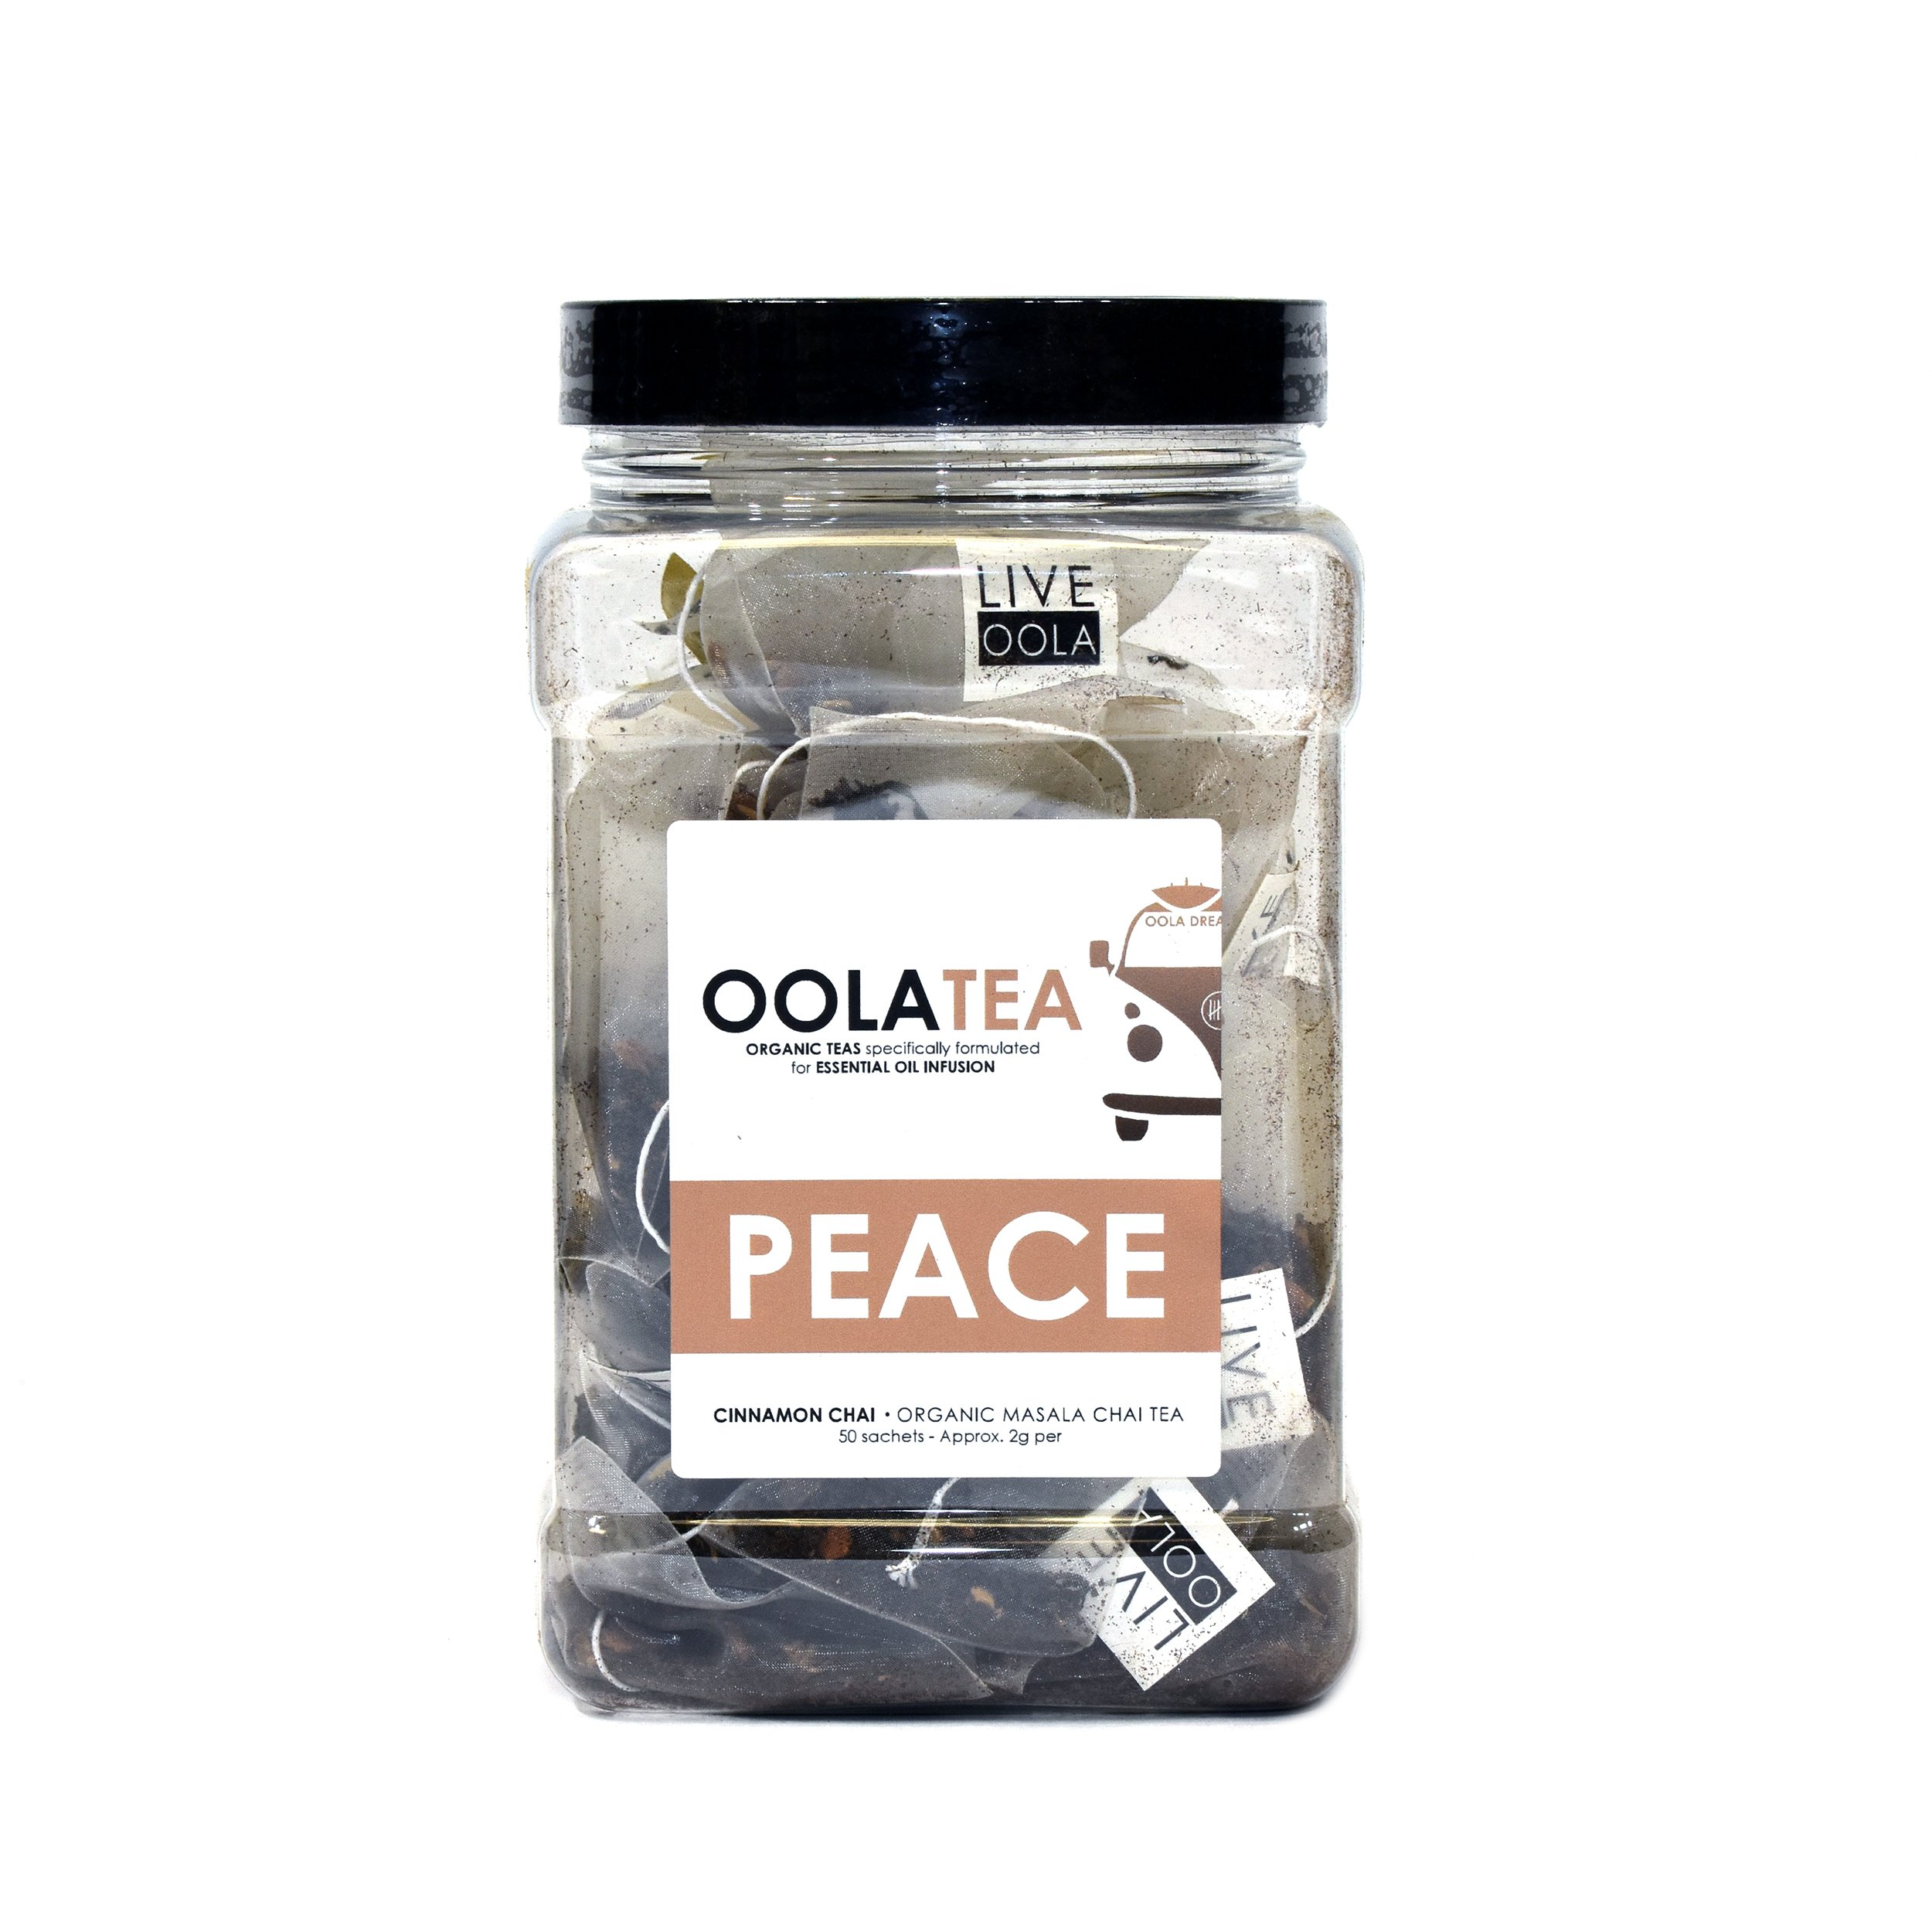 Oola Tea - PEACE 50 Count | Certified Organic Masala Chai | Reduces Bloating | Strengthens Immunity